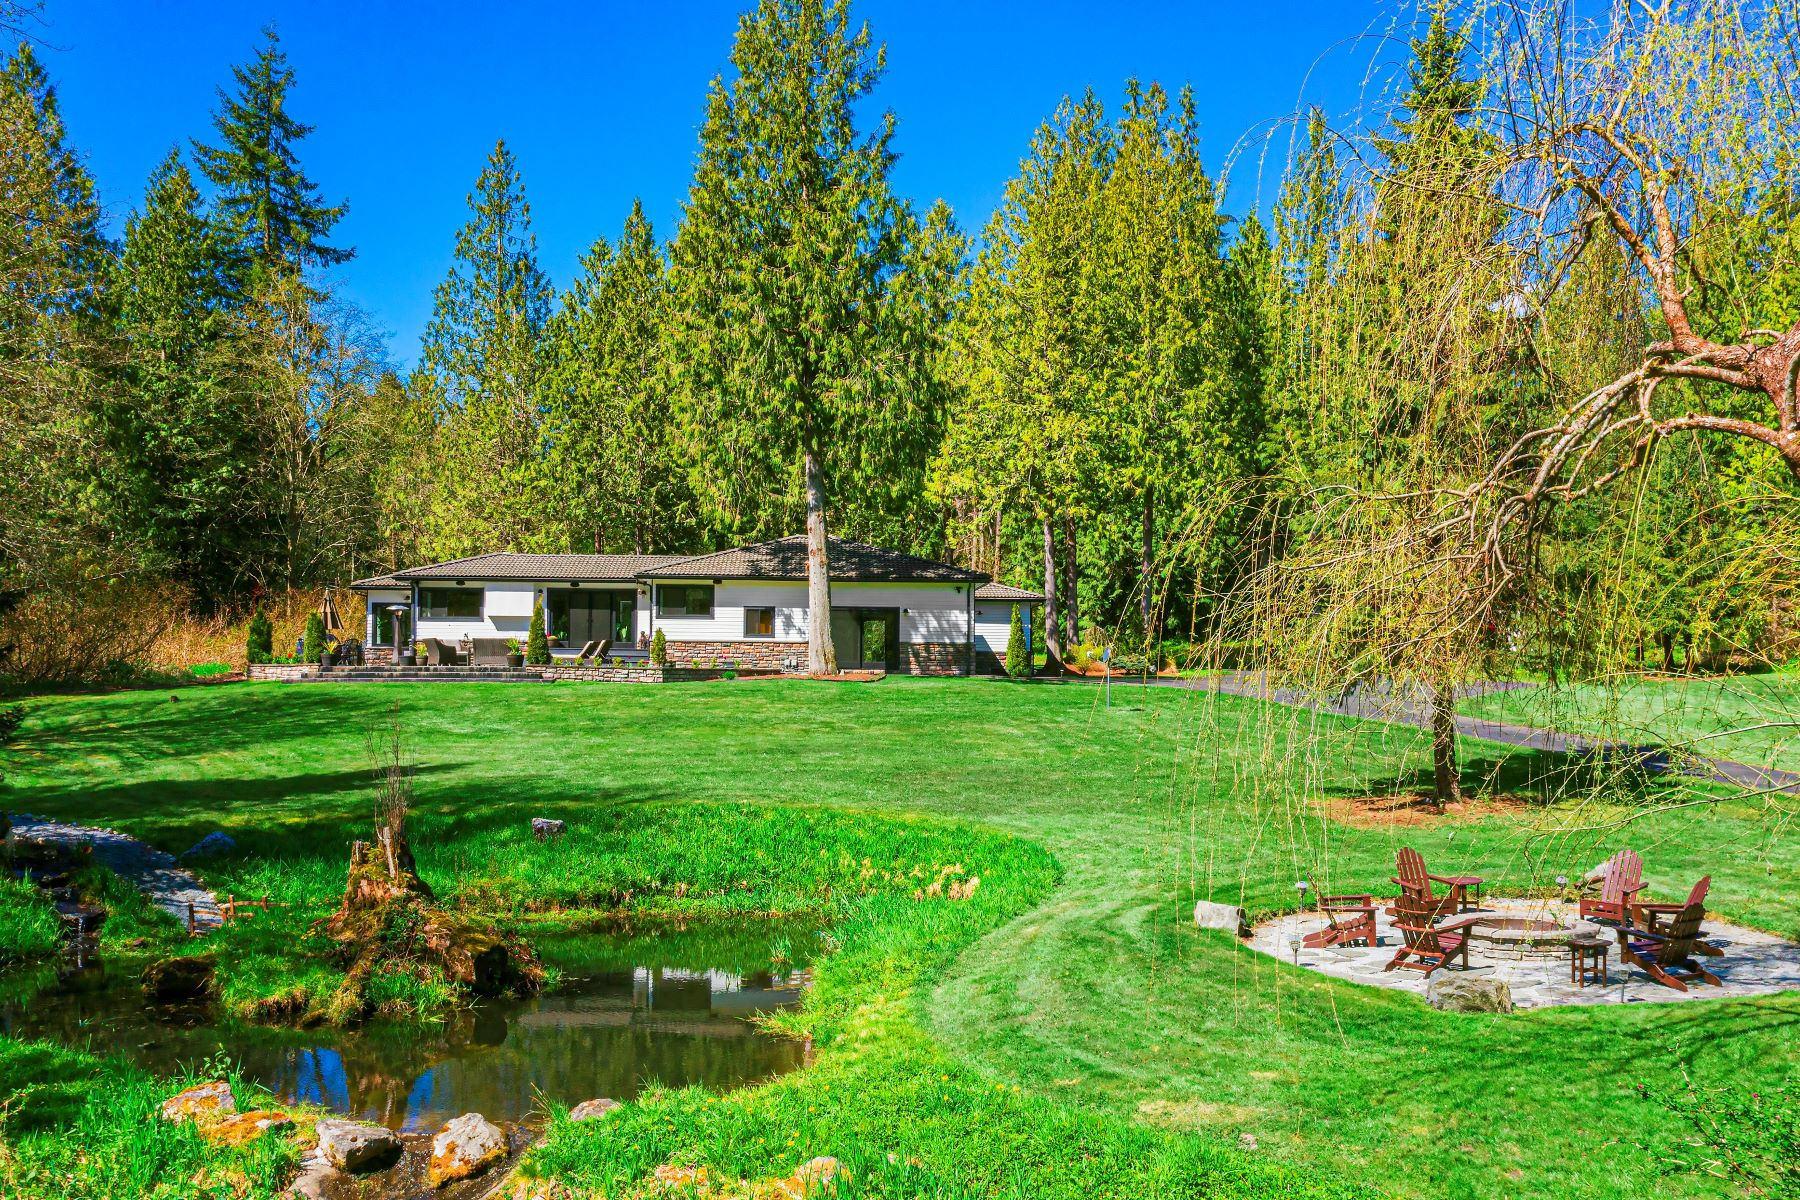 Single Family Homes for Sale at 17903 176th Ave NE, Woodinville, WA 98072 17903 176th Avenue NE, Woodinville, Washington 98072 United States